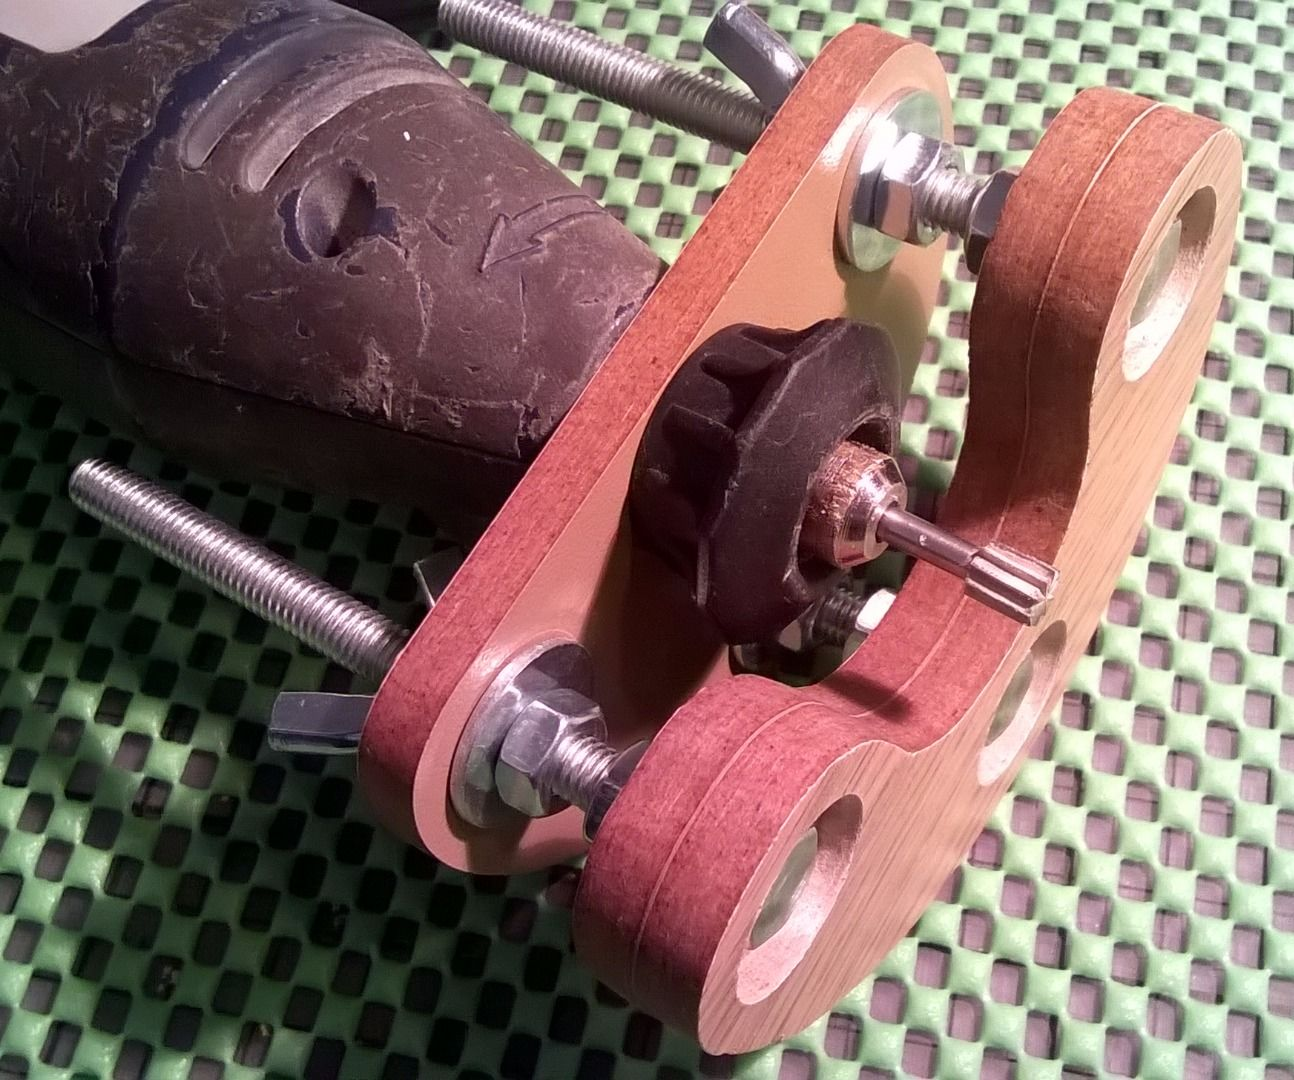 Wooden precision mini router base for rotary tool (with cardboard prototype)